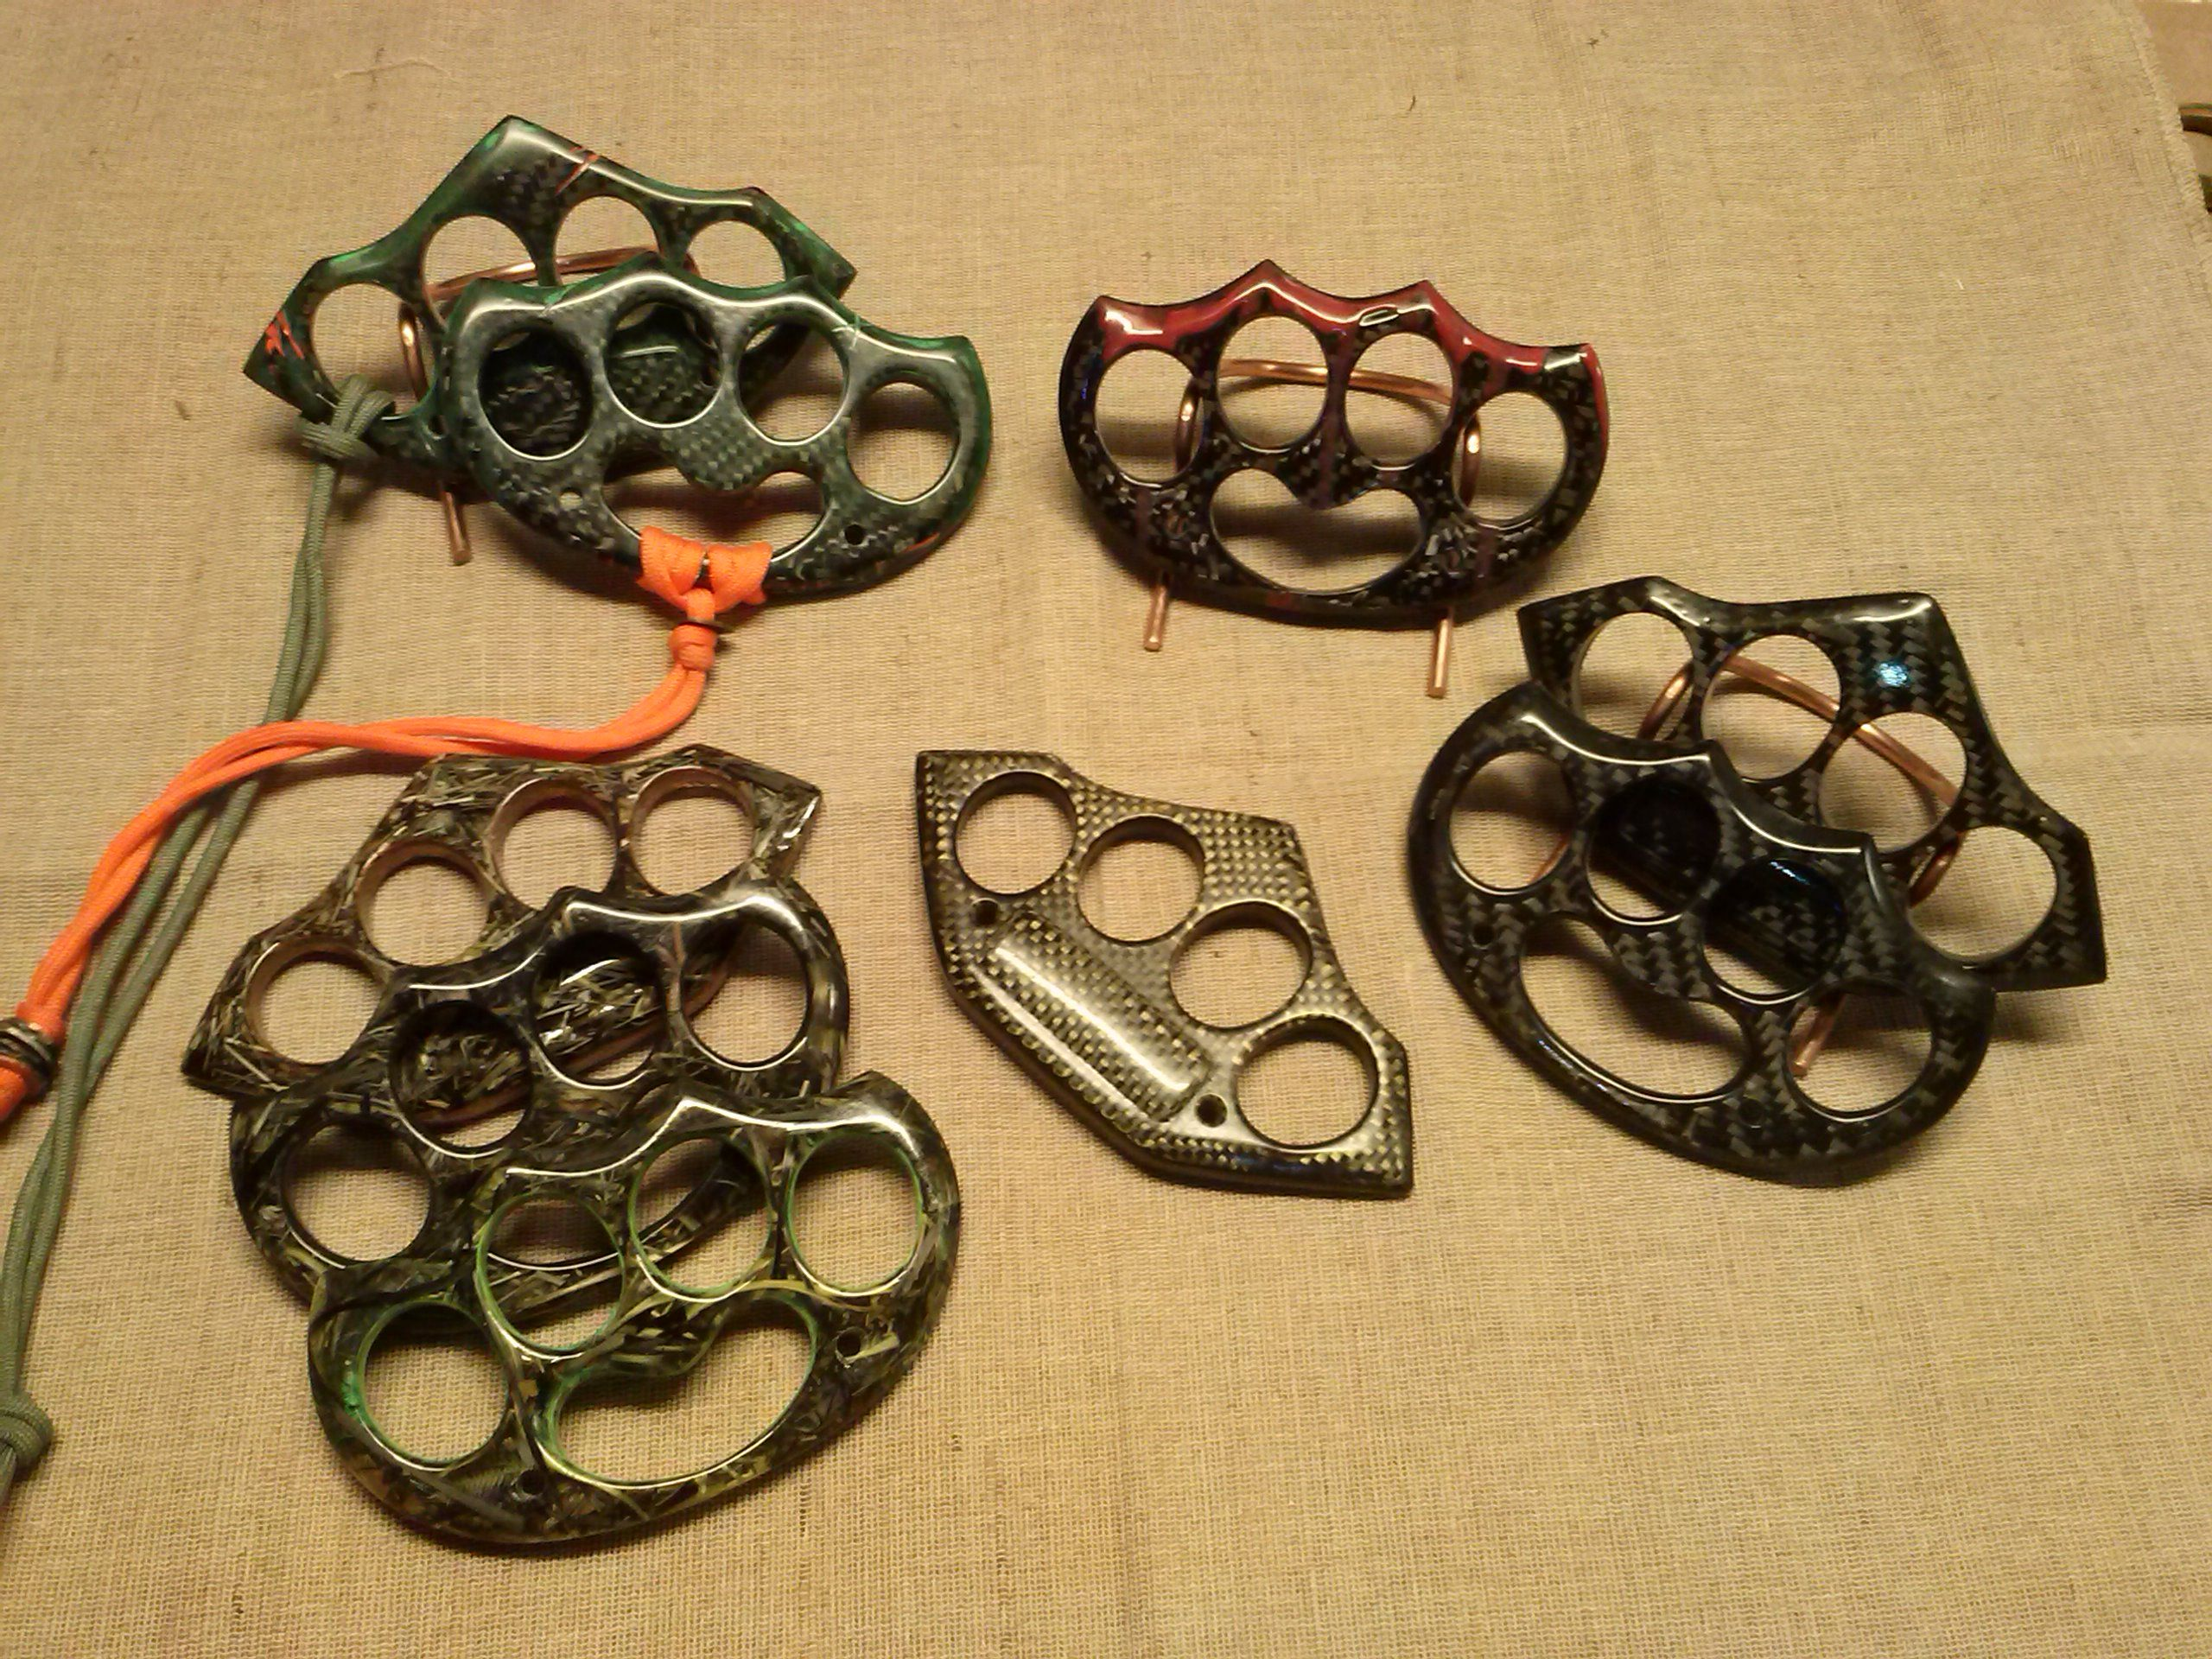 Wooden Knuckles Carbon Fiber Kevlar And Camo Chaos Knuckle Dusters Brass